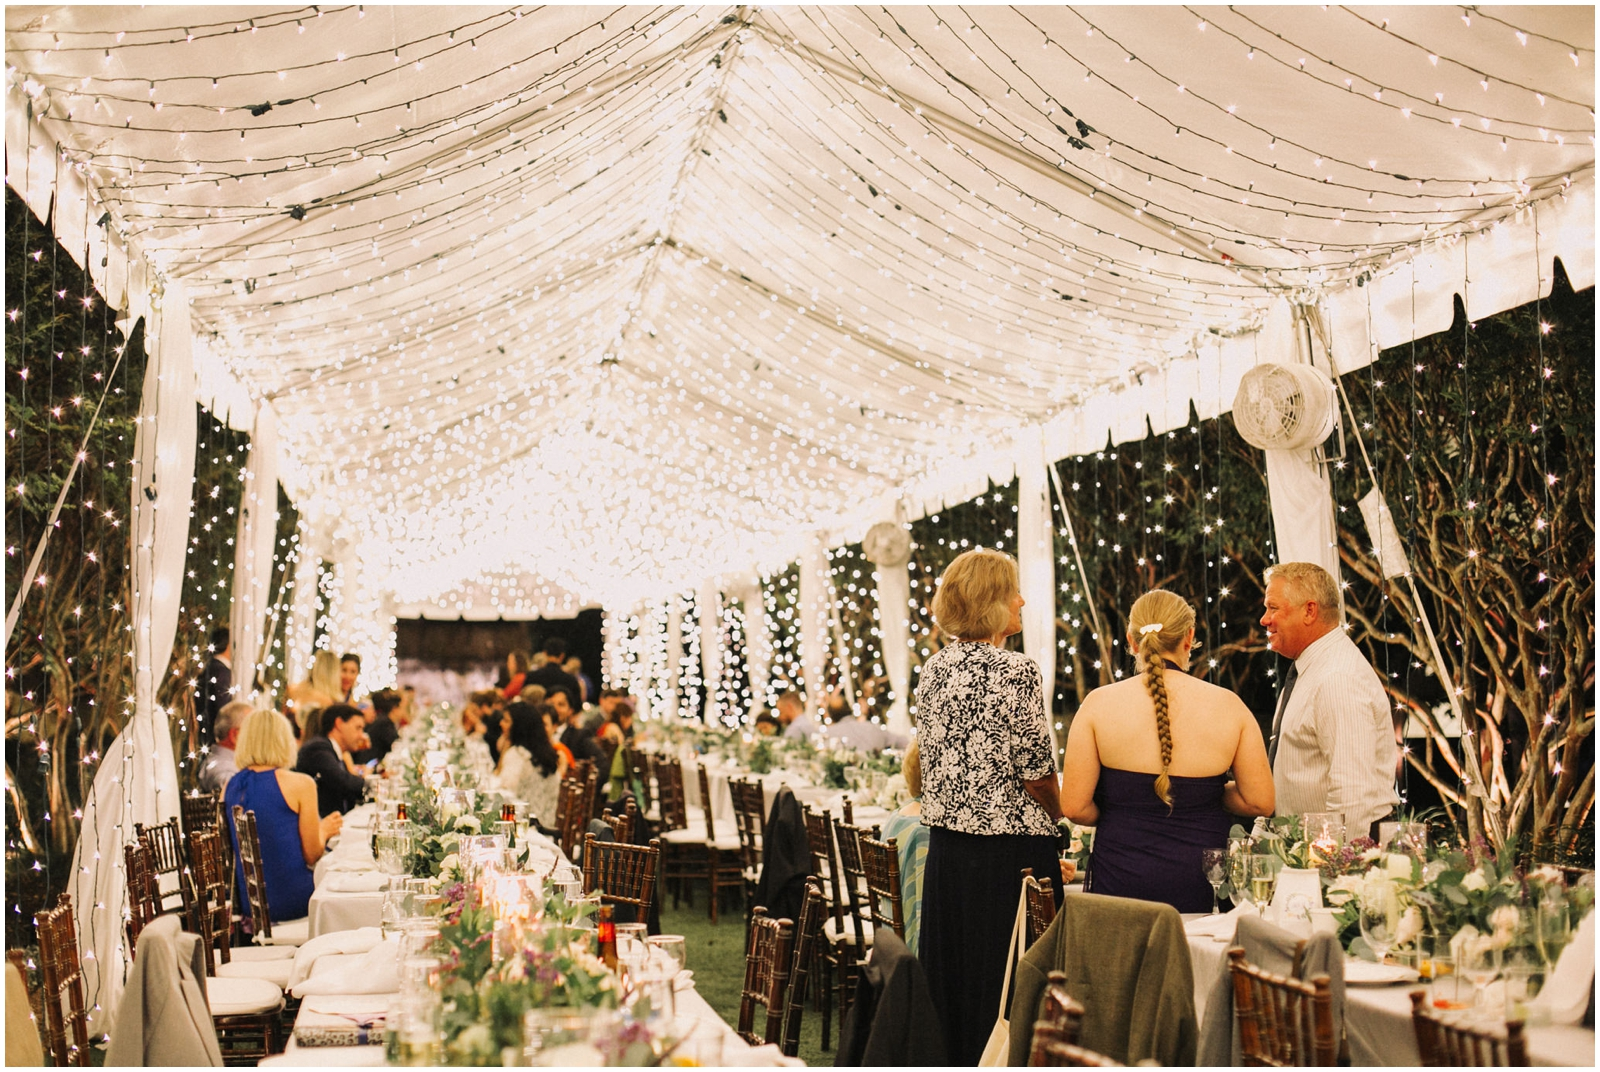 String lights tent for wedding reception